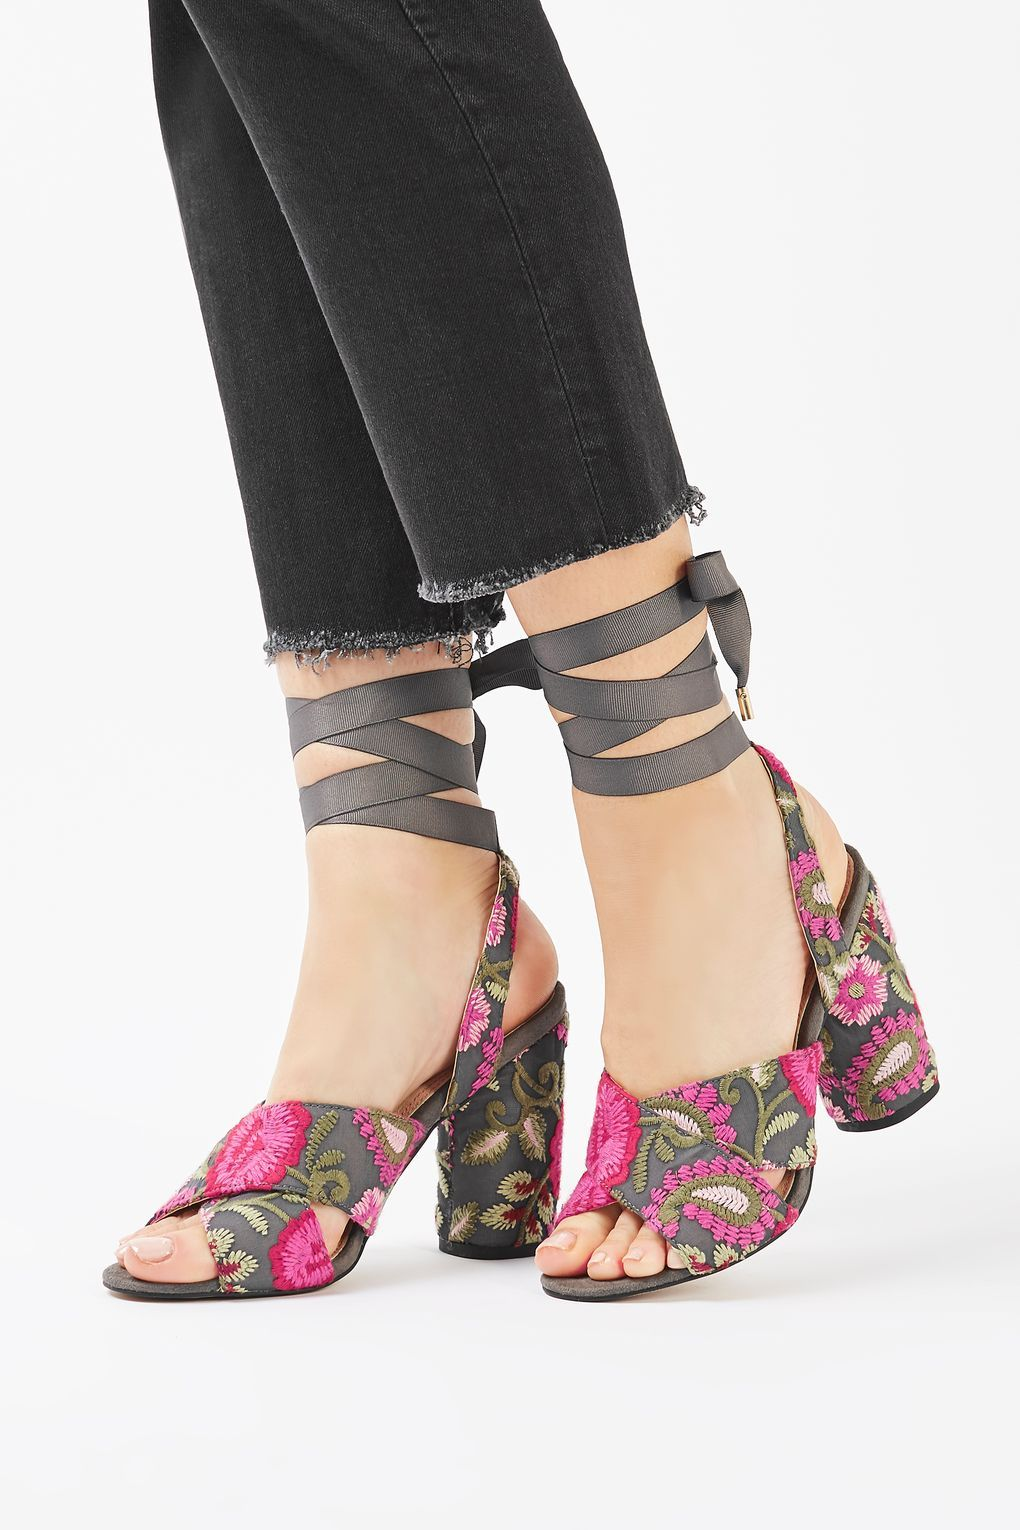 In love with these embroidered heels zapatos bordados in love with these embroidered heels ccuart Image collections